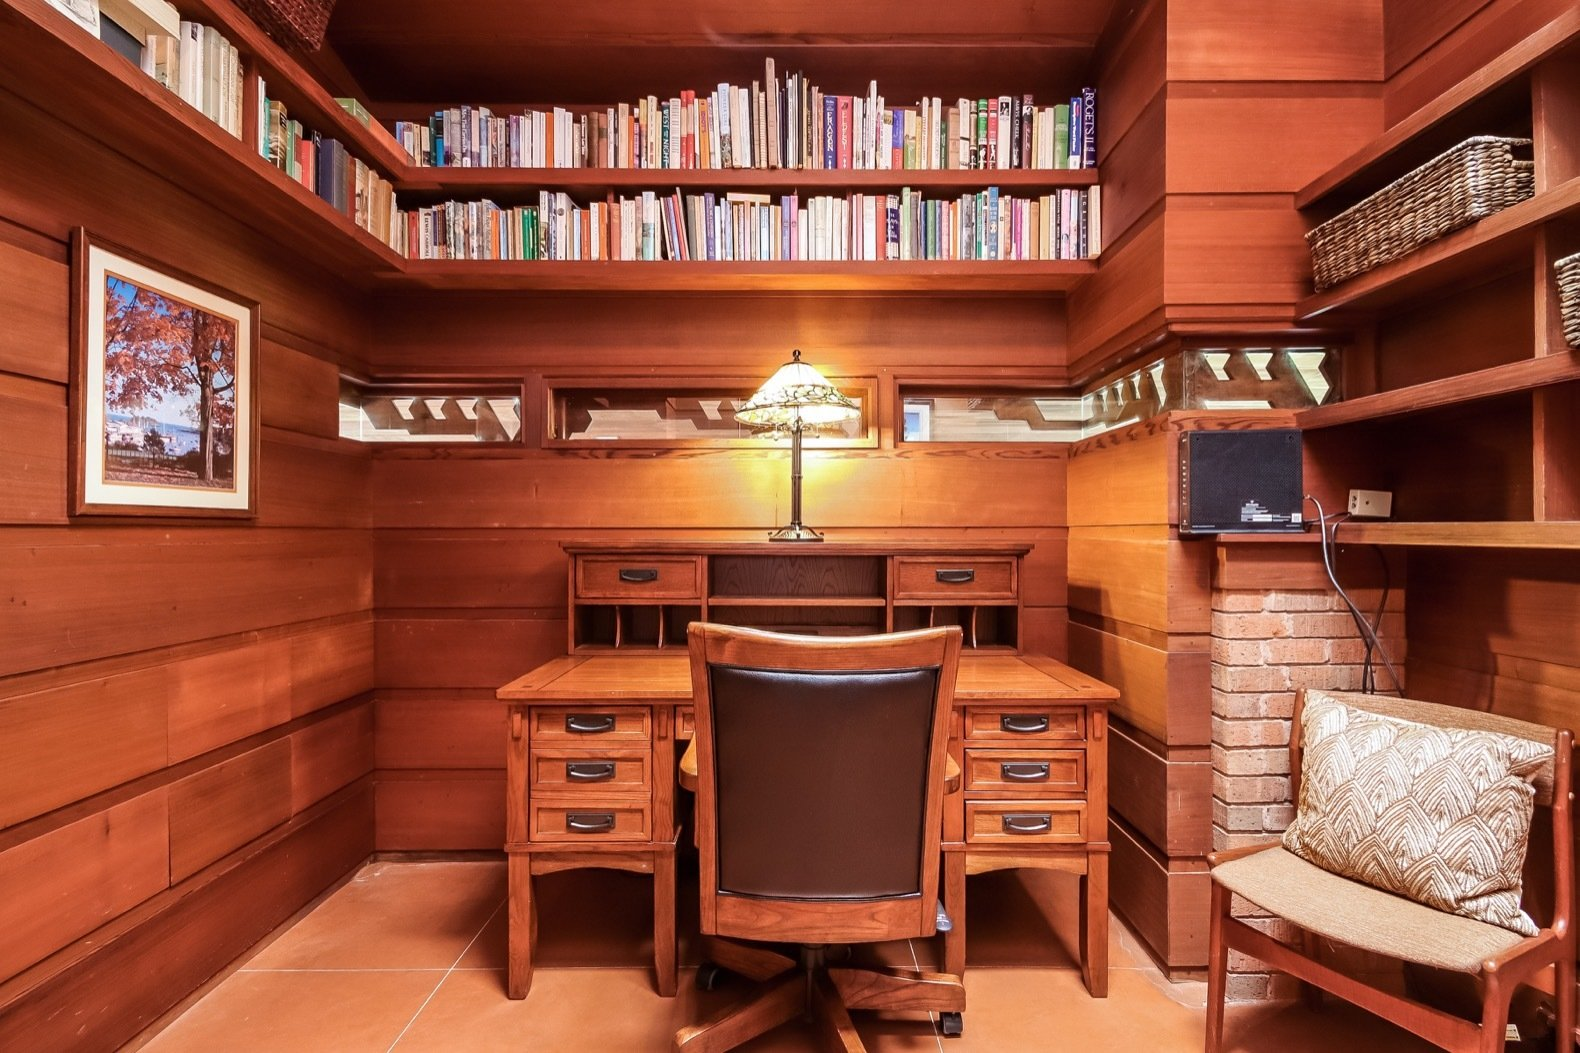 Office, Chair, Shelves, Concrete Floor, Desk, and Study Room Type Built-in shelving wraps around the workspace, located next to the second bedroom.   Photo 15 of 17 in A Gorgeous Frank Lloyd Wright Home Hits the Market For the First Time at $1.2M